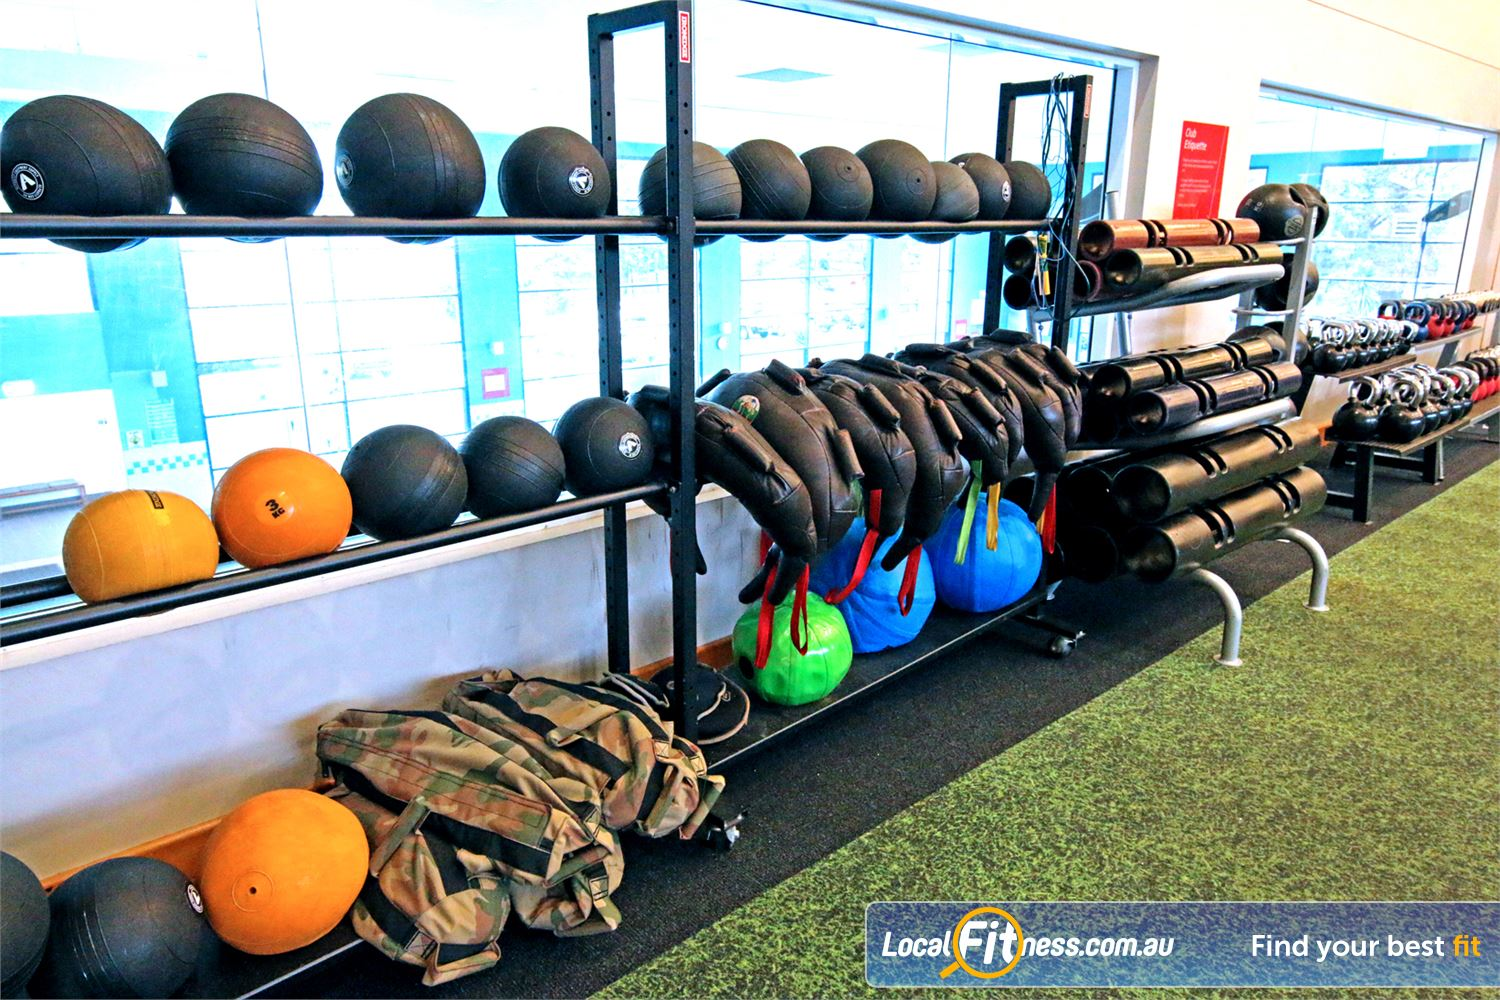 Fitness First Near Mackenzie The latest innovative fitness trends in our functional freestyle area.